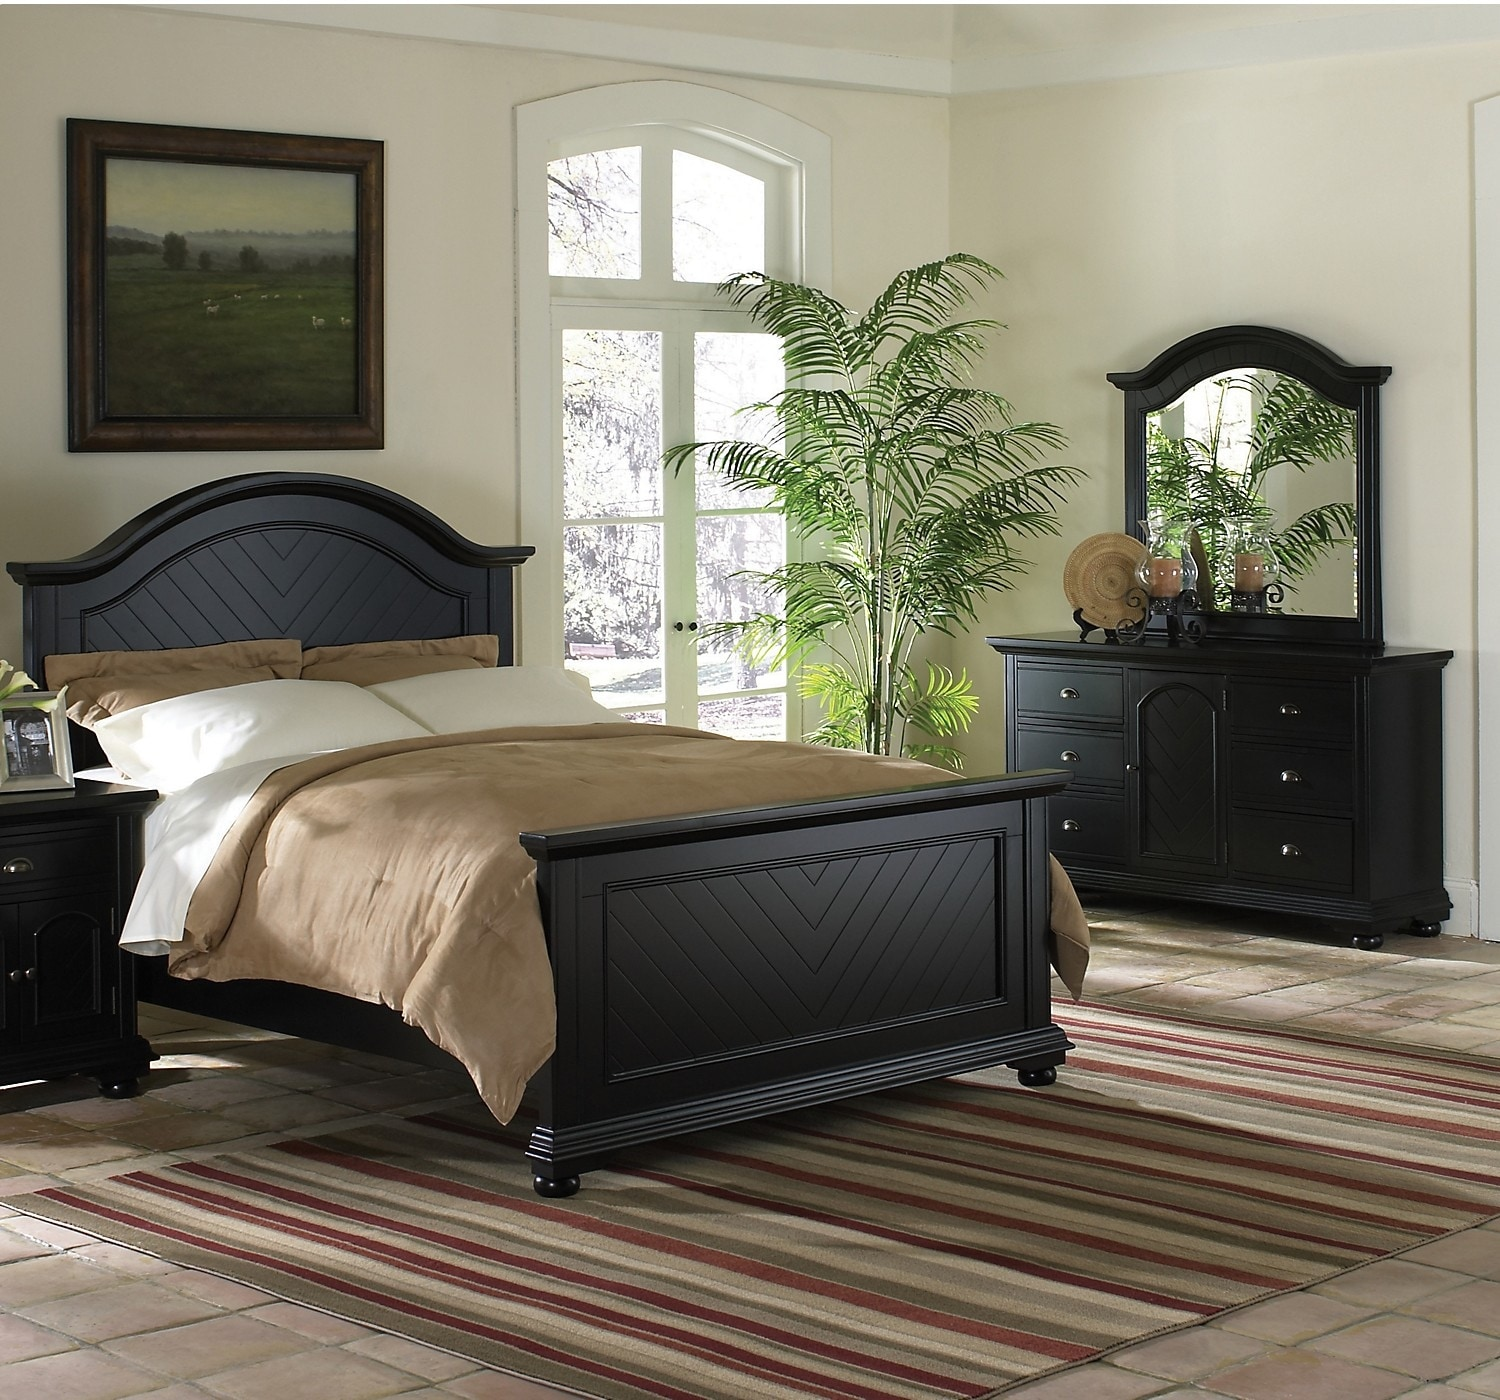 Brook Black 5-Piece King Bedroom Set